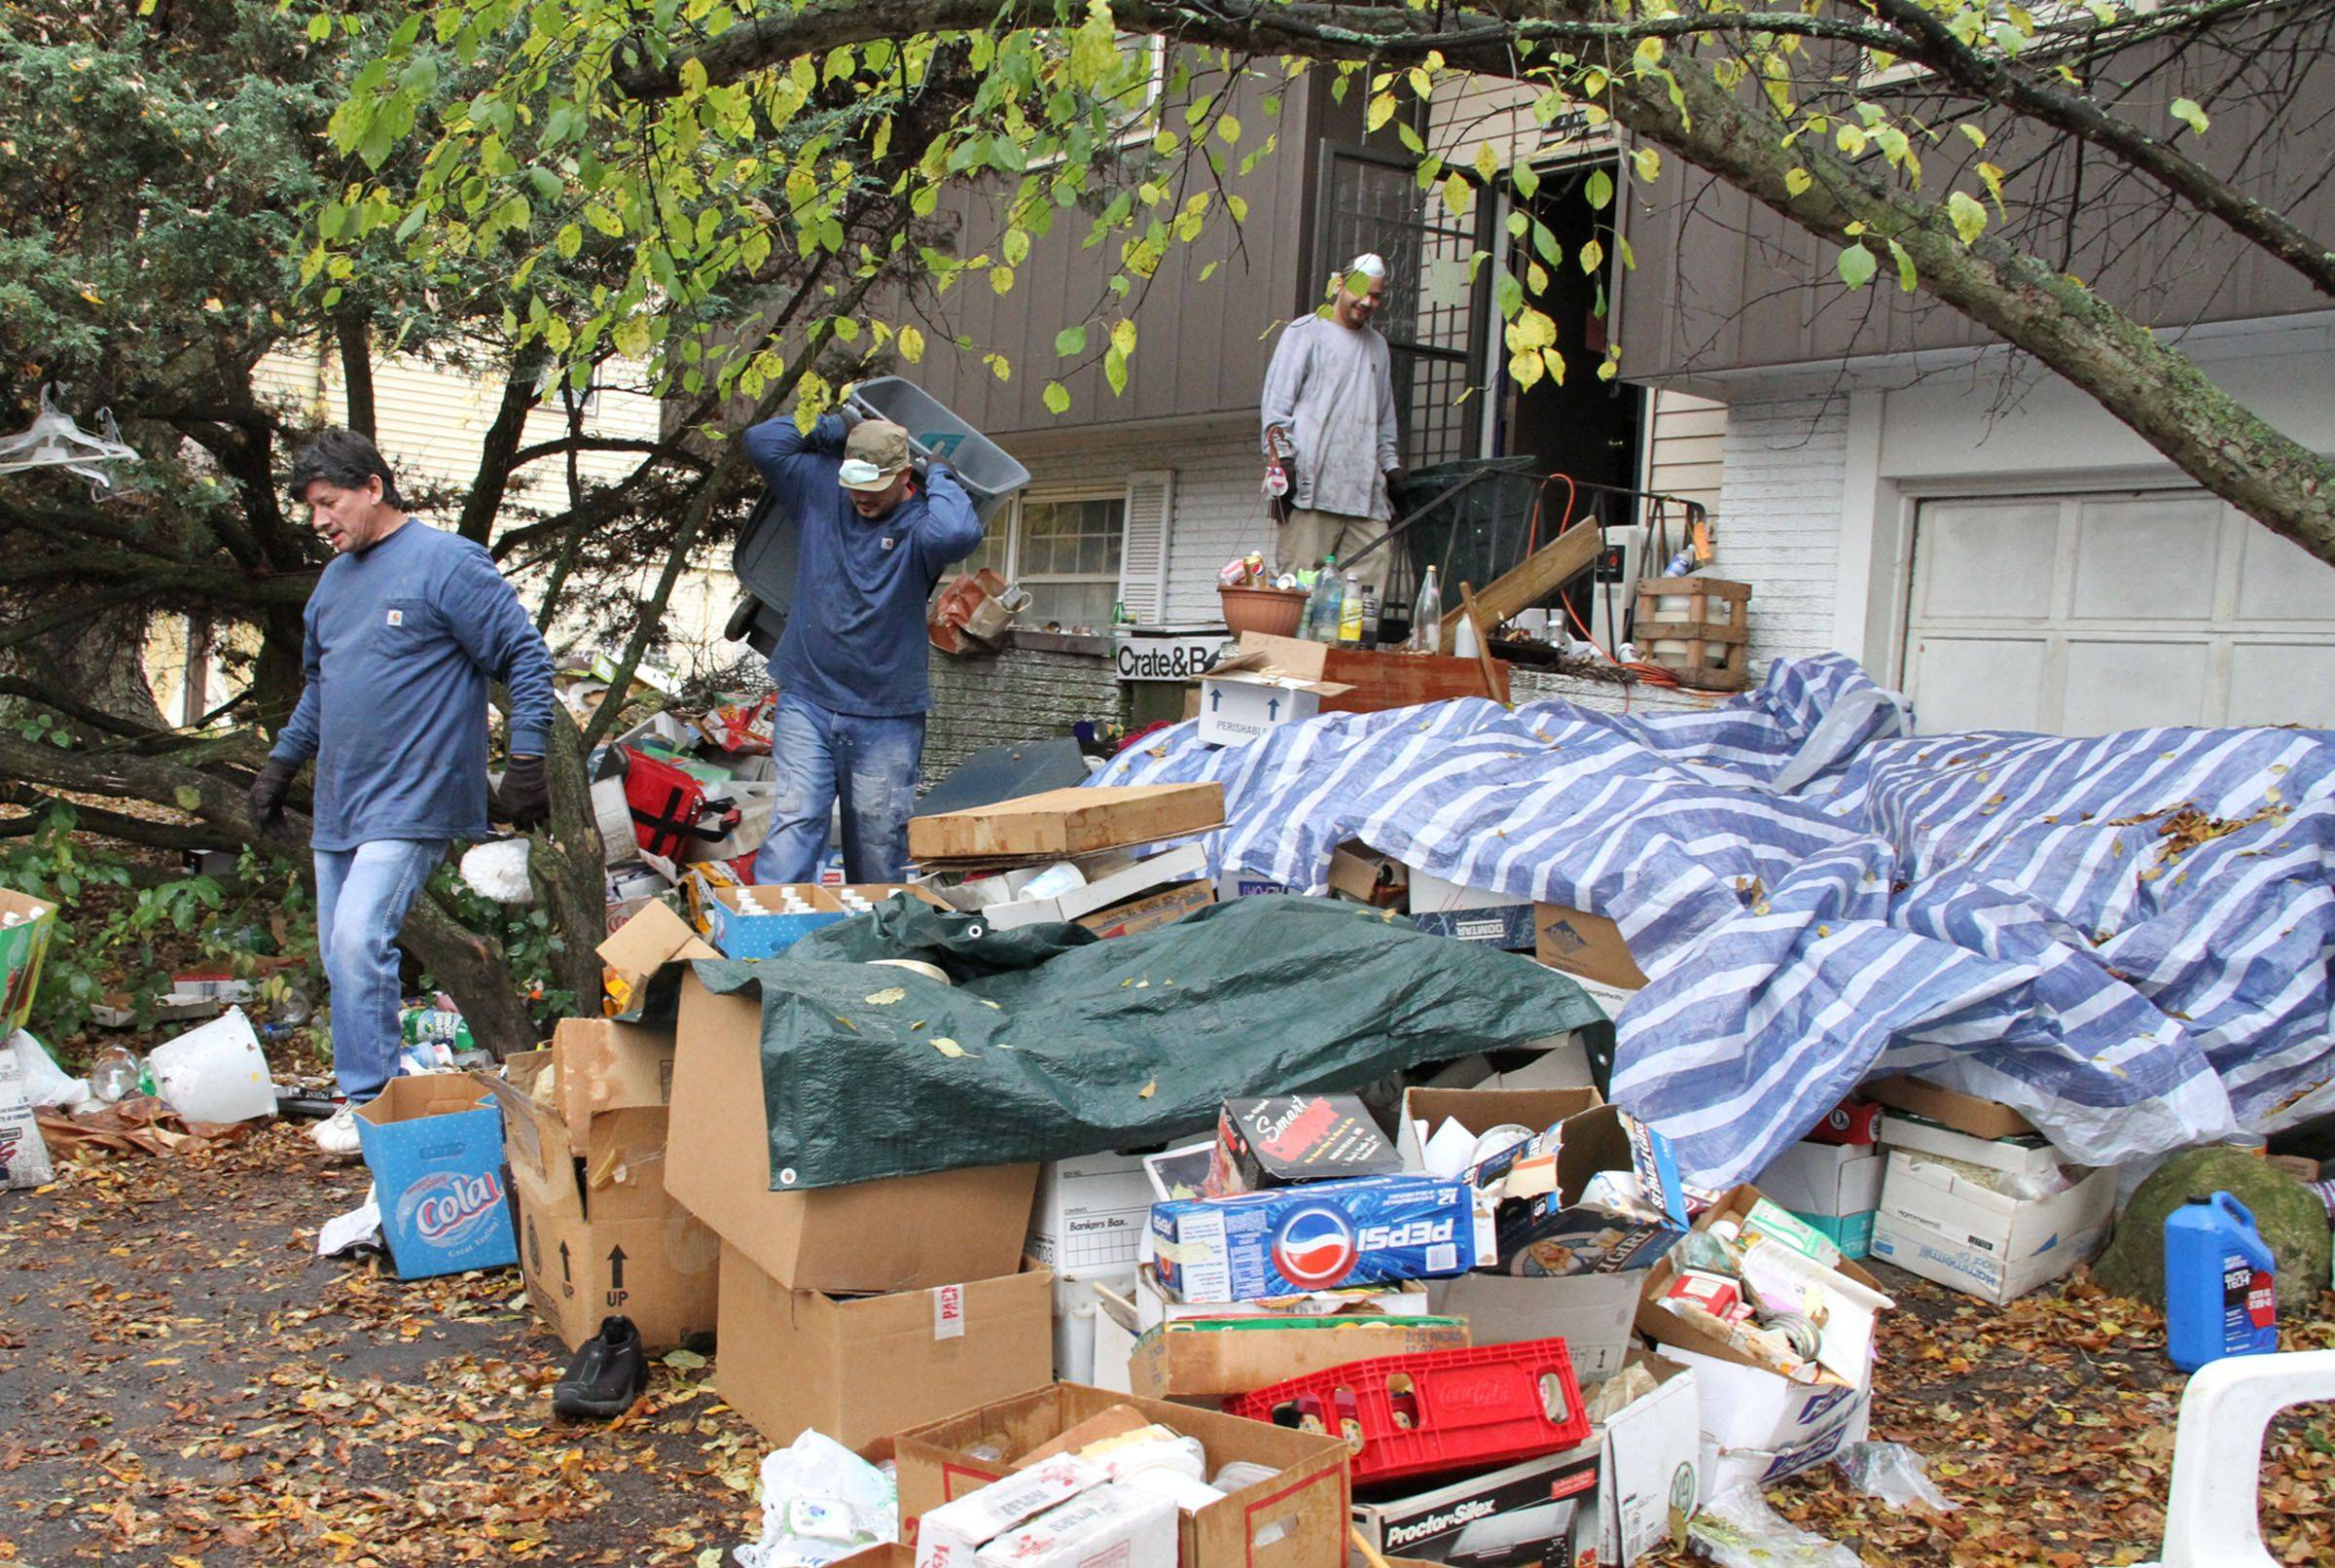 Workers from Junk King remove items Tuesday from John Wuerffel's front yard and home on Hampton Lane in Schaumburg. The work is being done as part of a court-ordered cleanup.